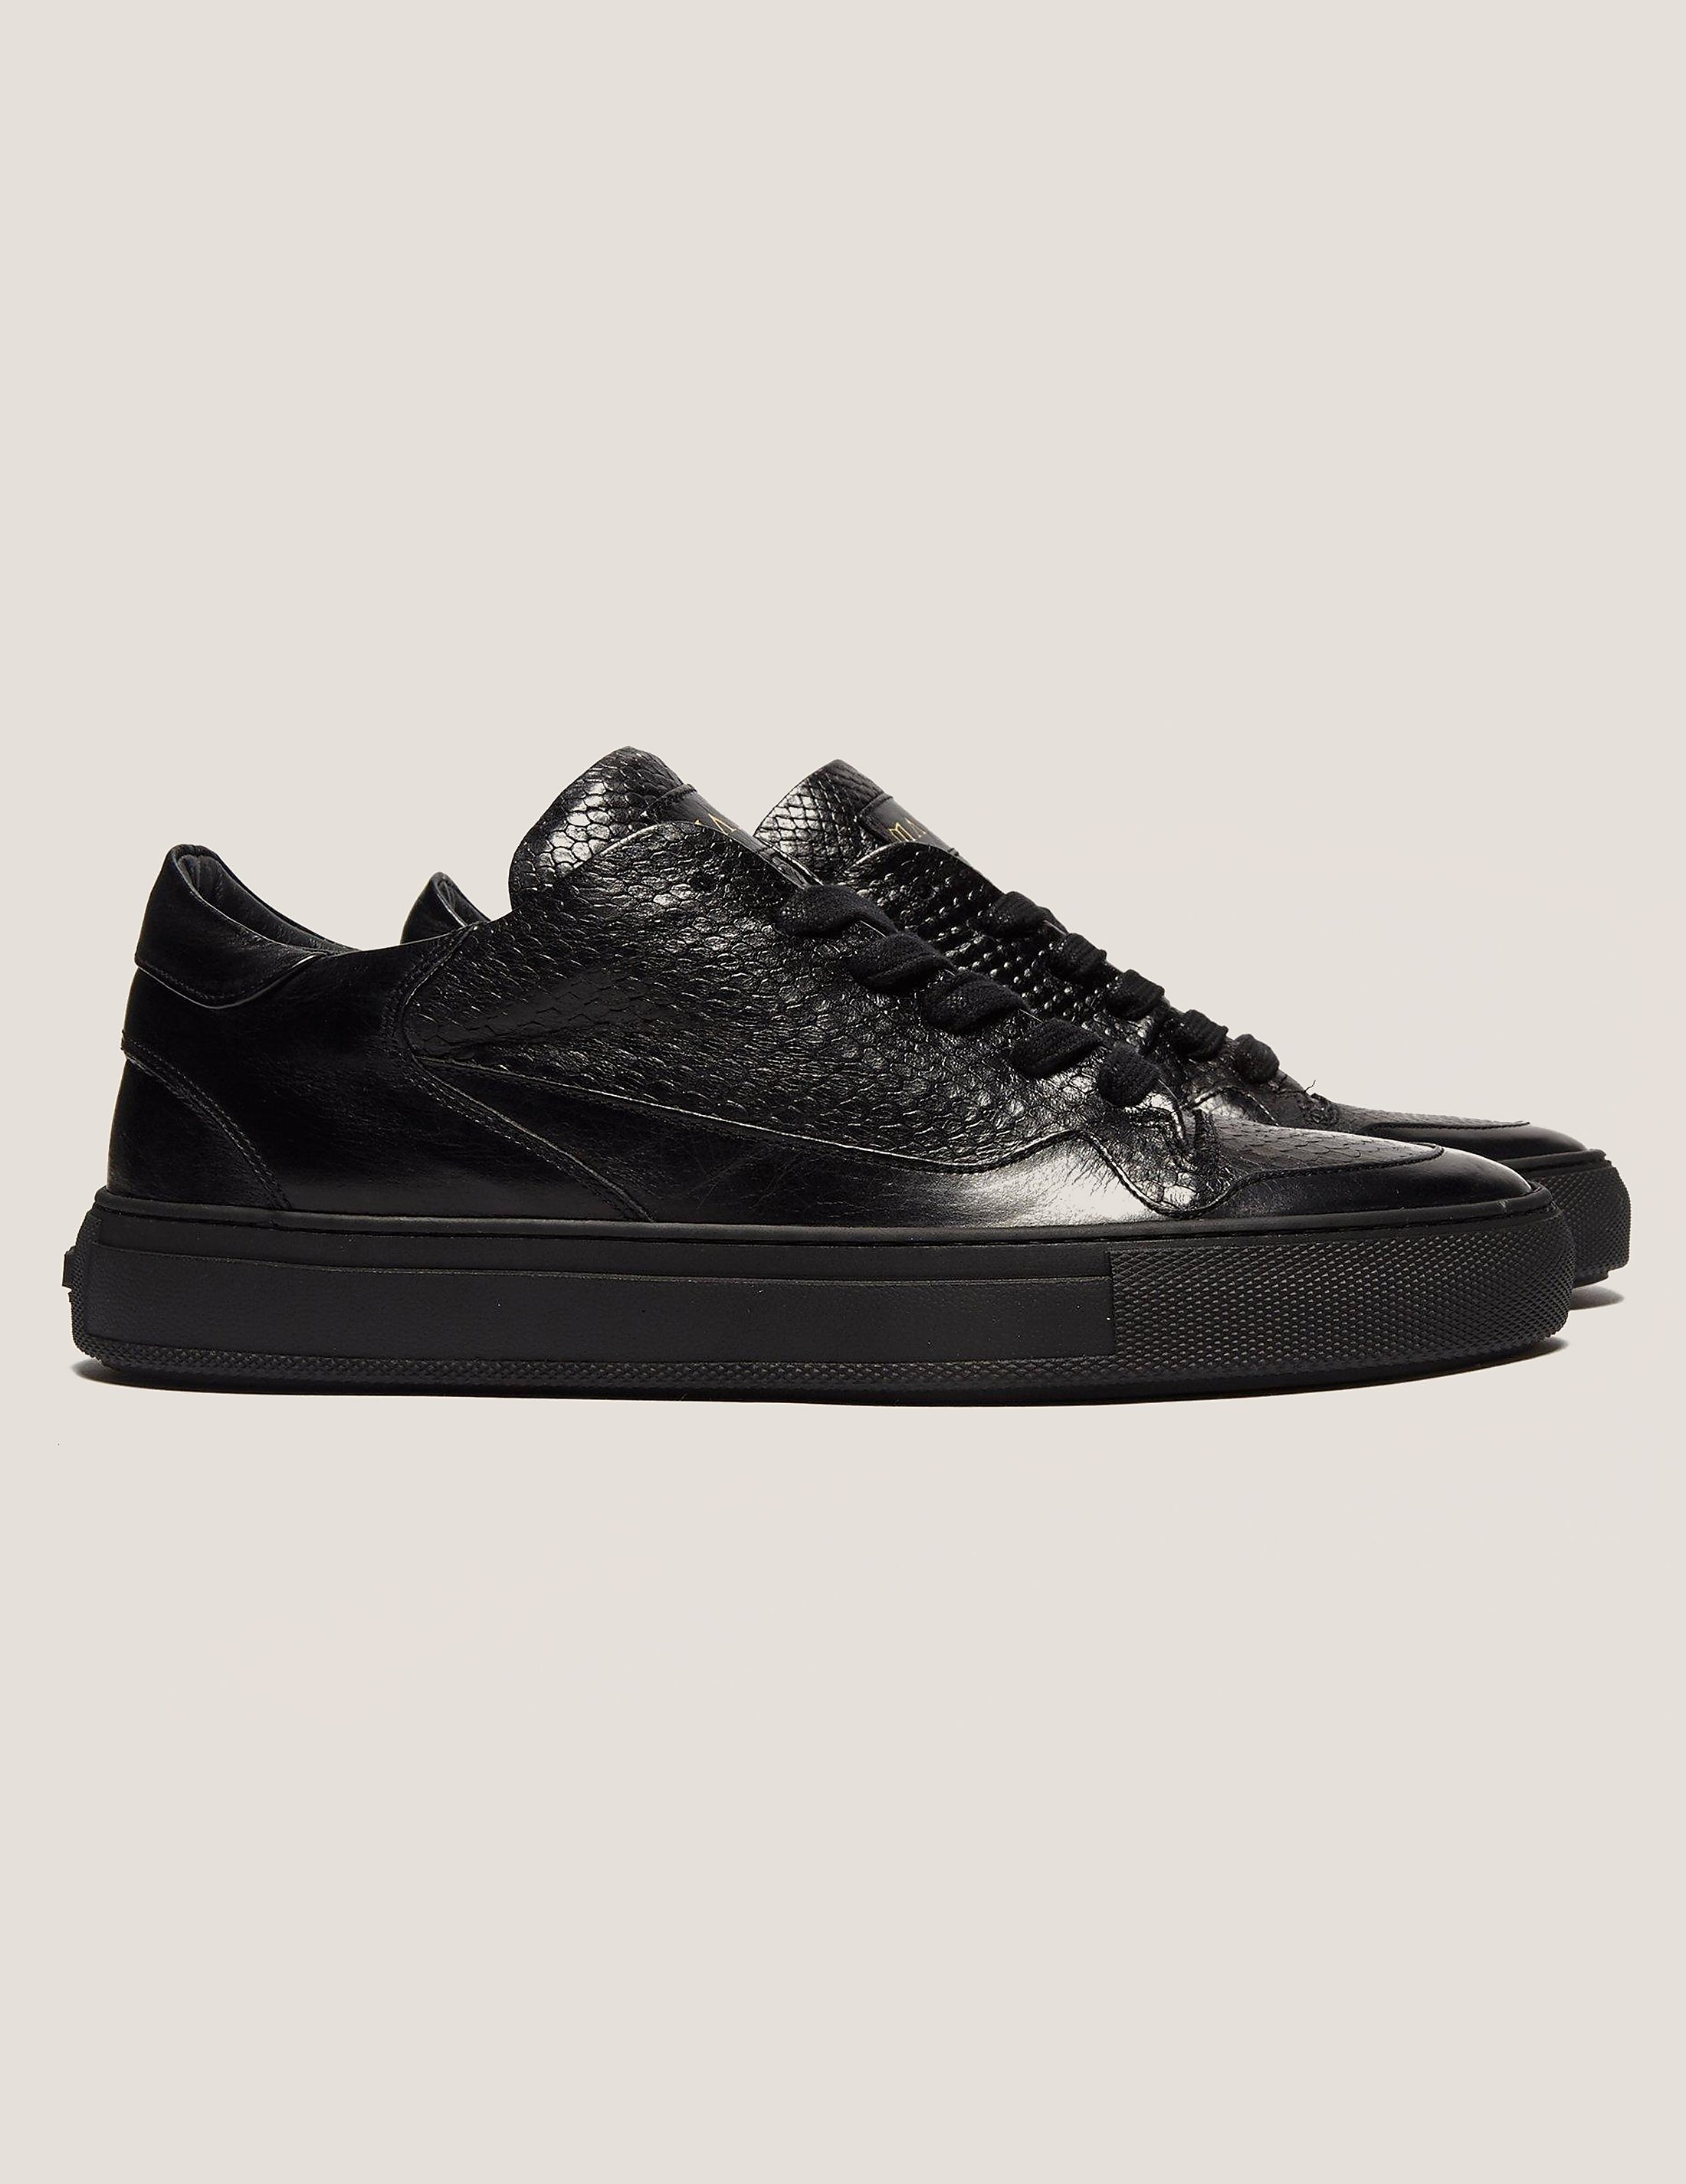 Mason Garments Next Generation Low Trainer